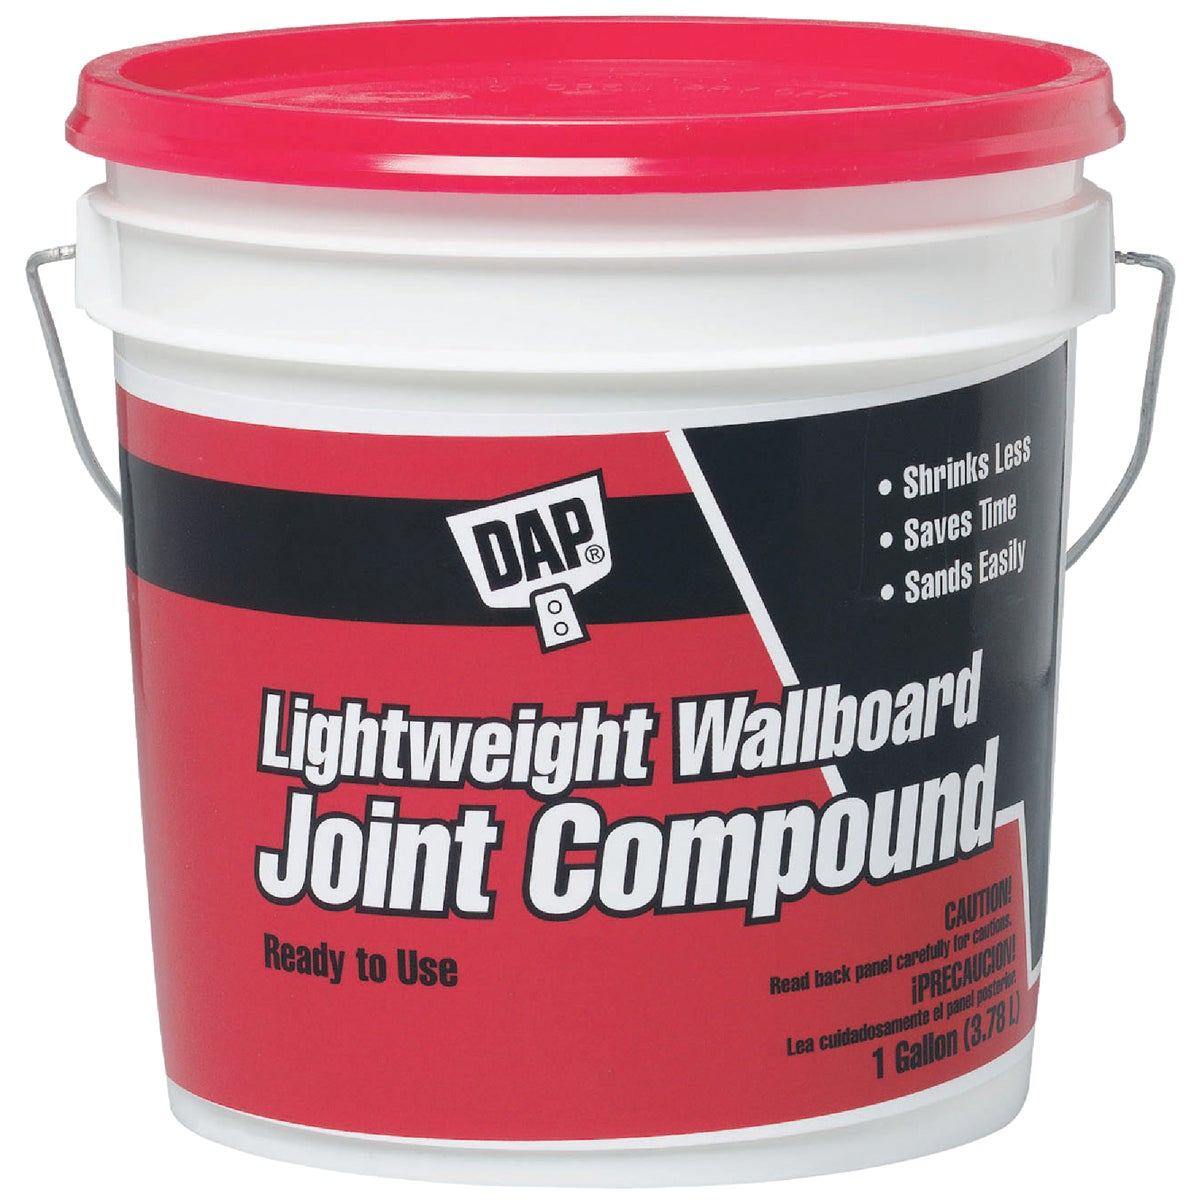 GAL LW JOINT COMPOUND